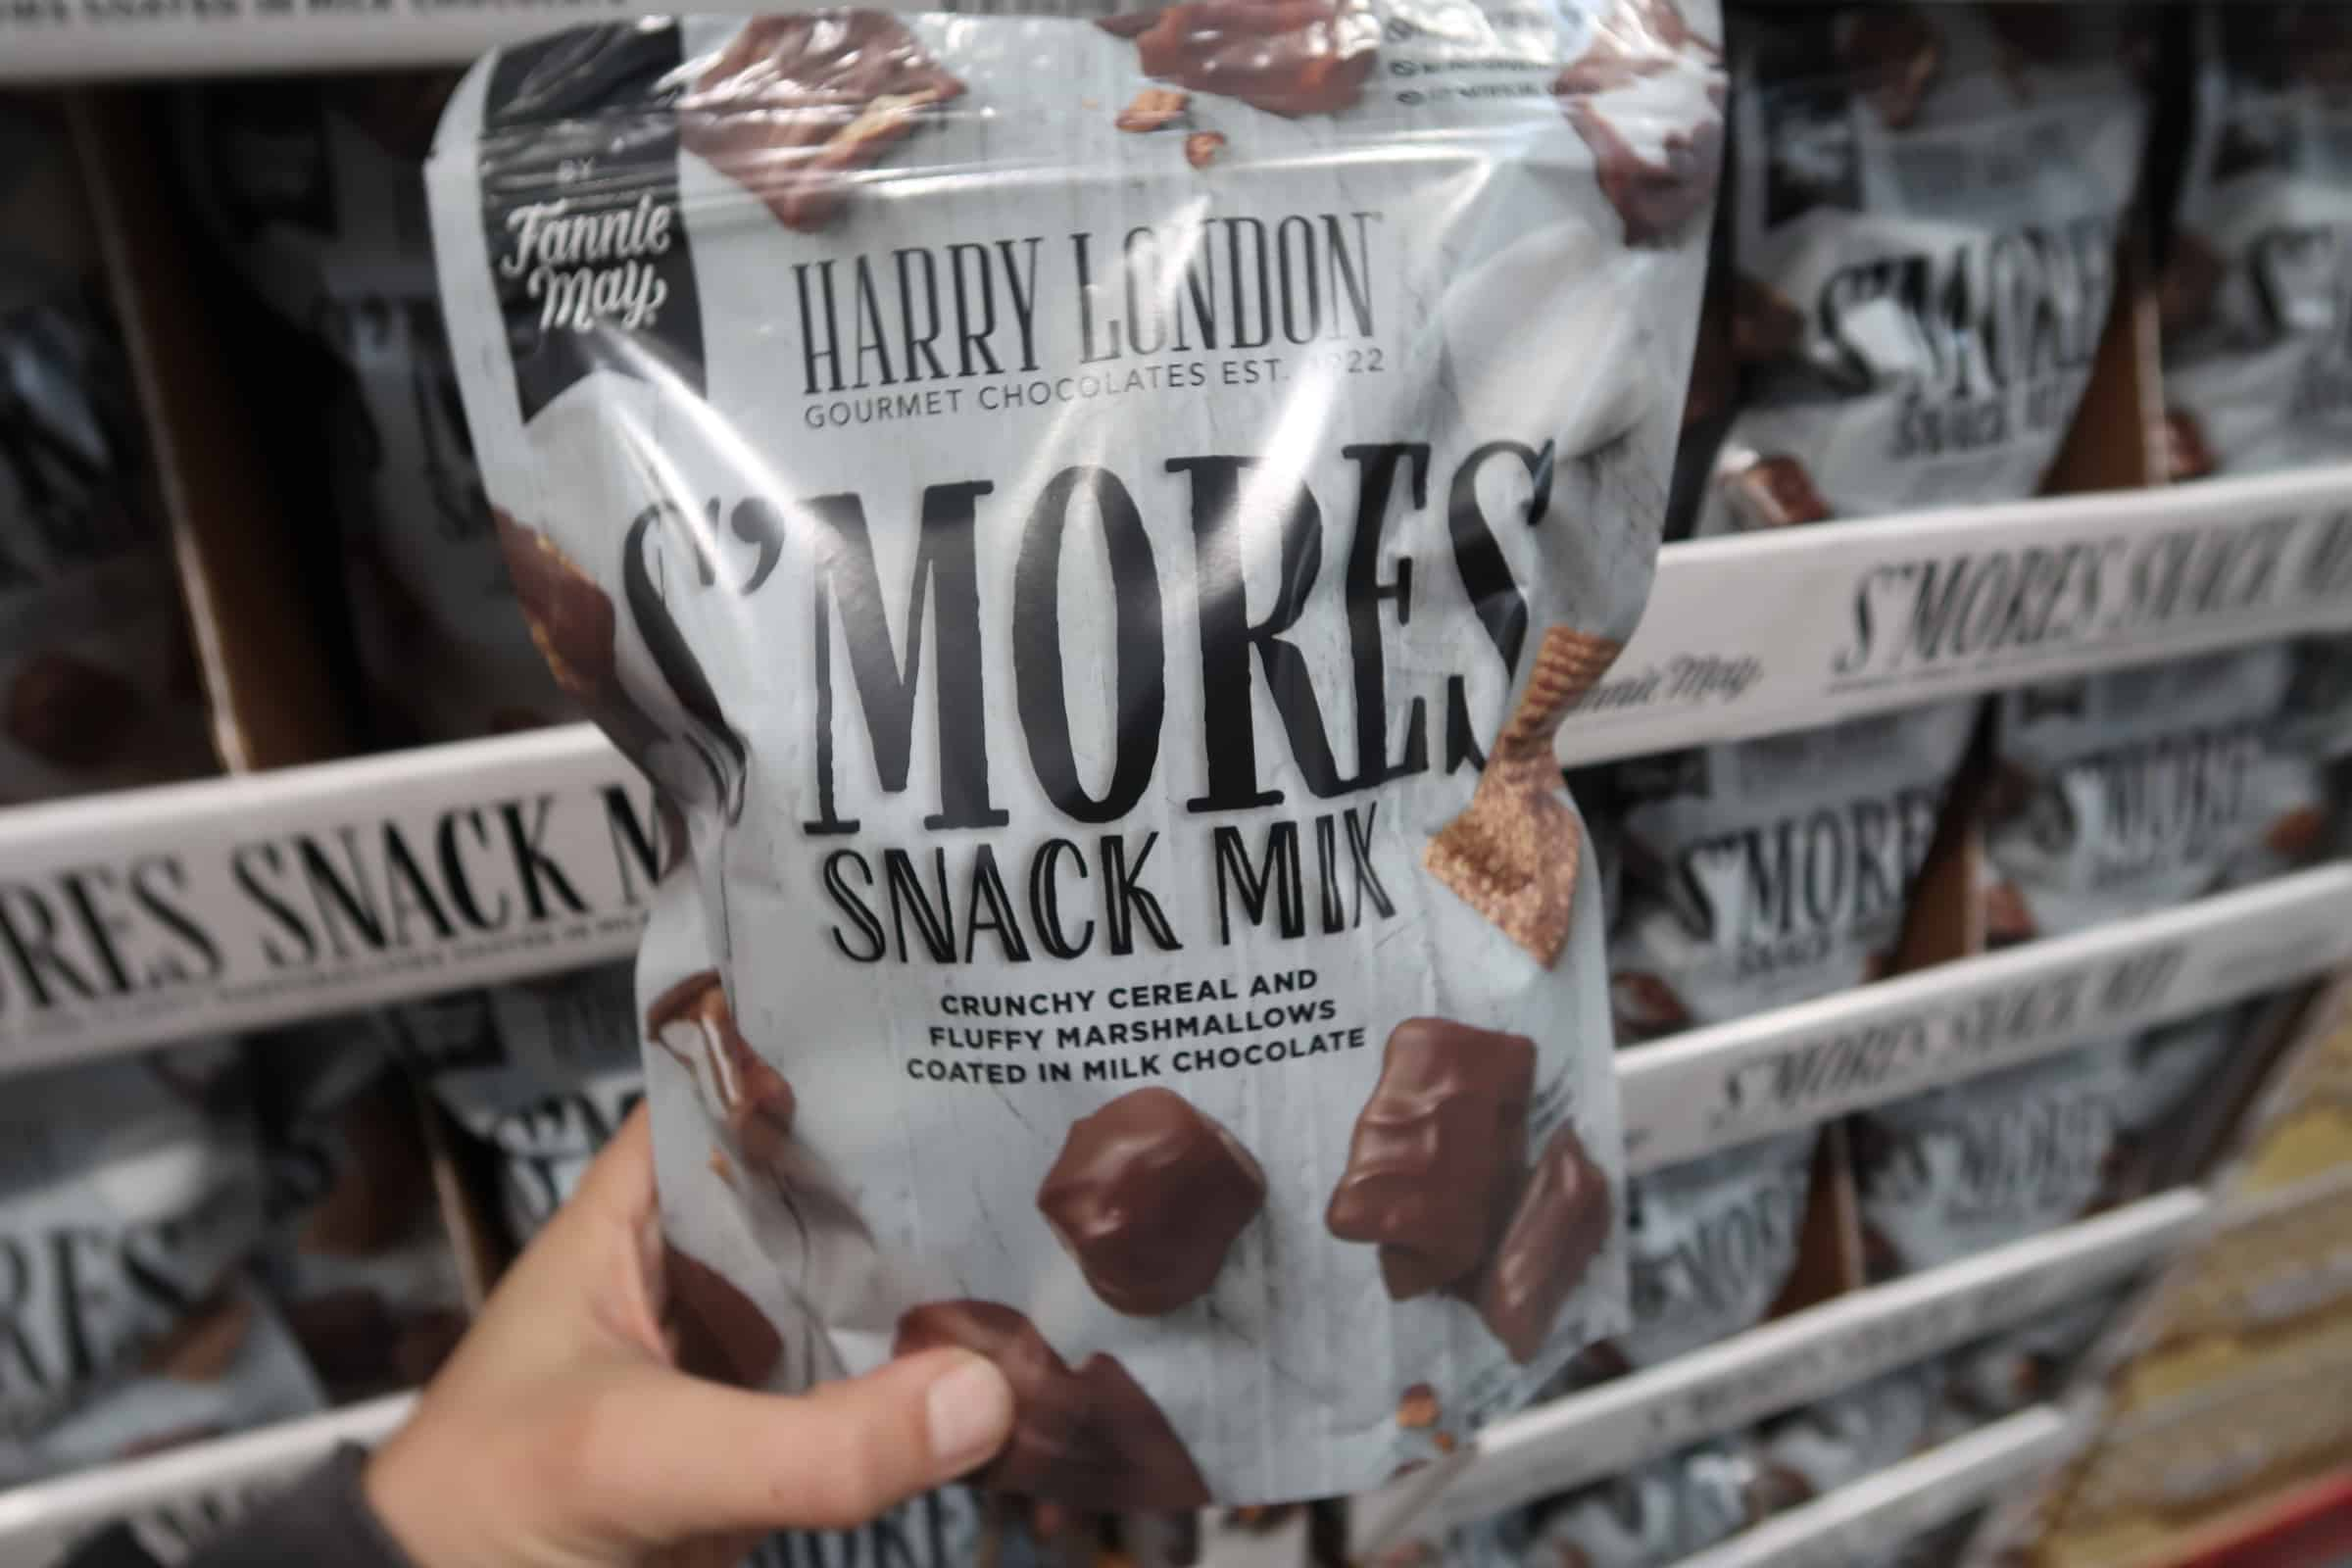 Harry London S'Mores Snack Mix at Costco Now